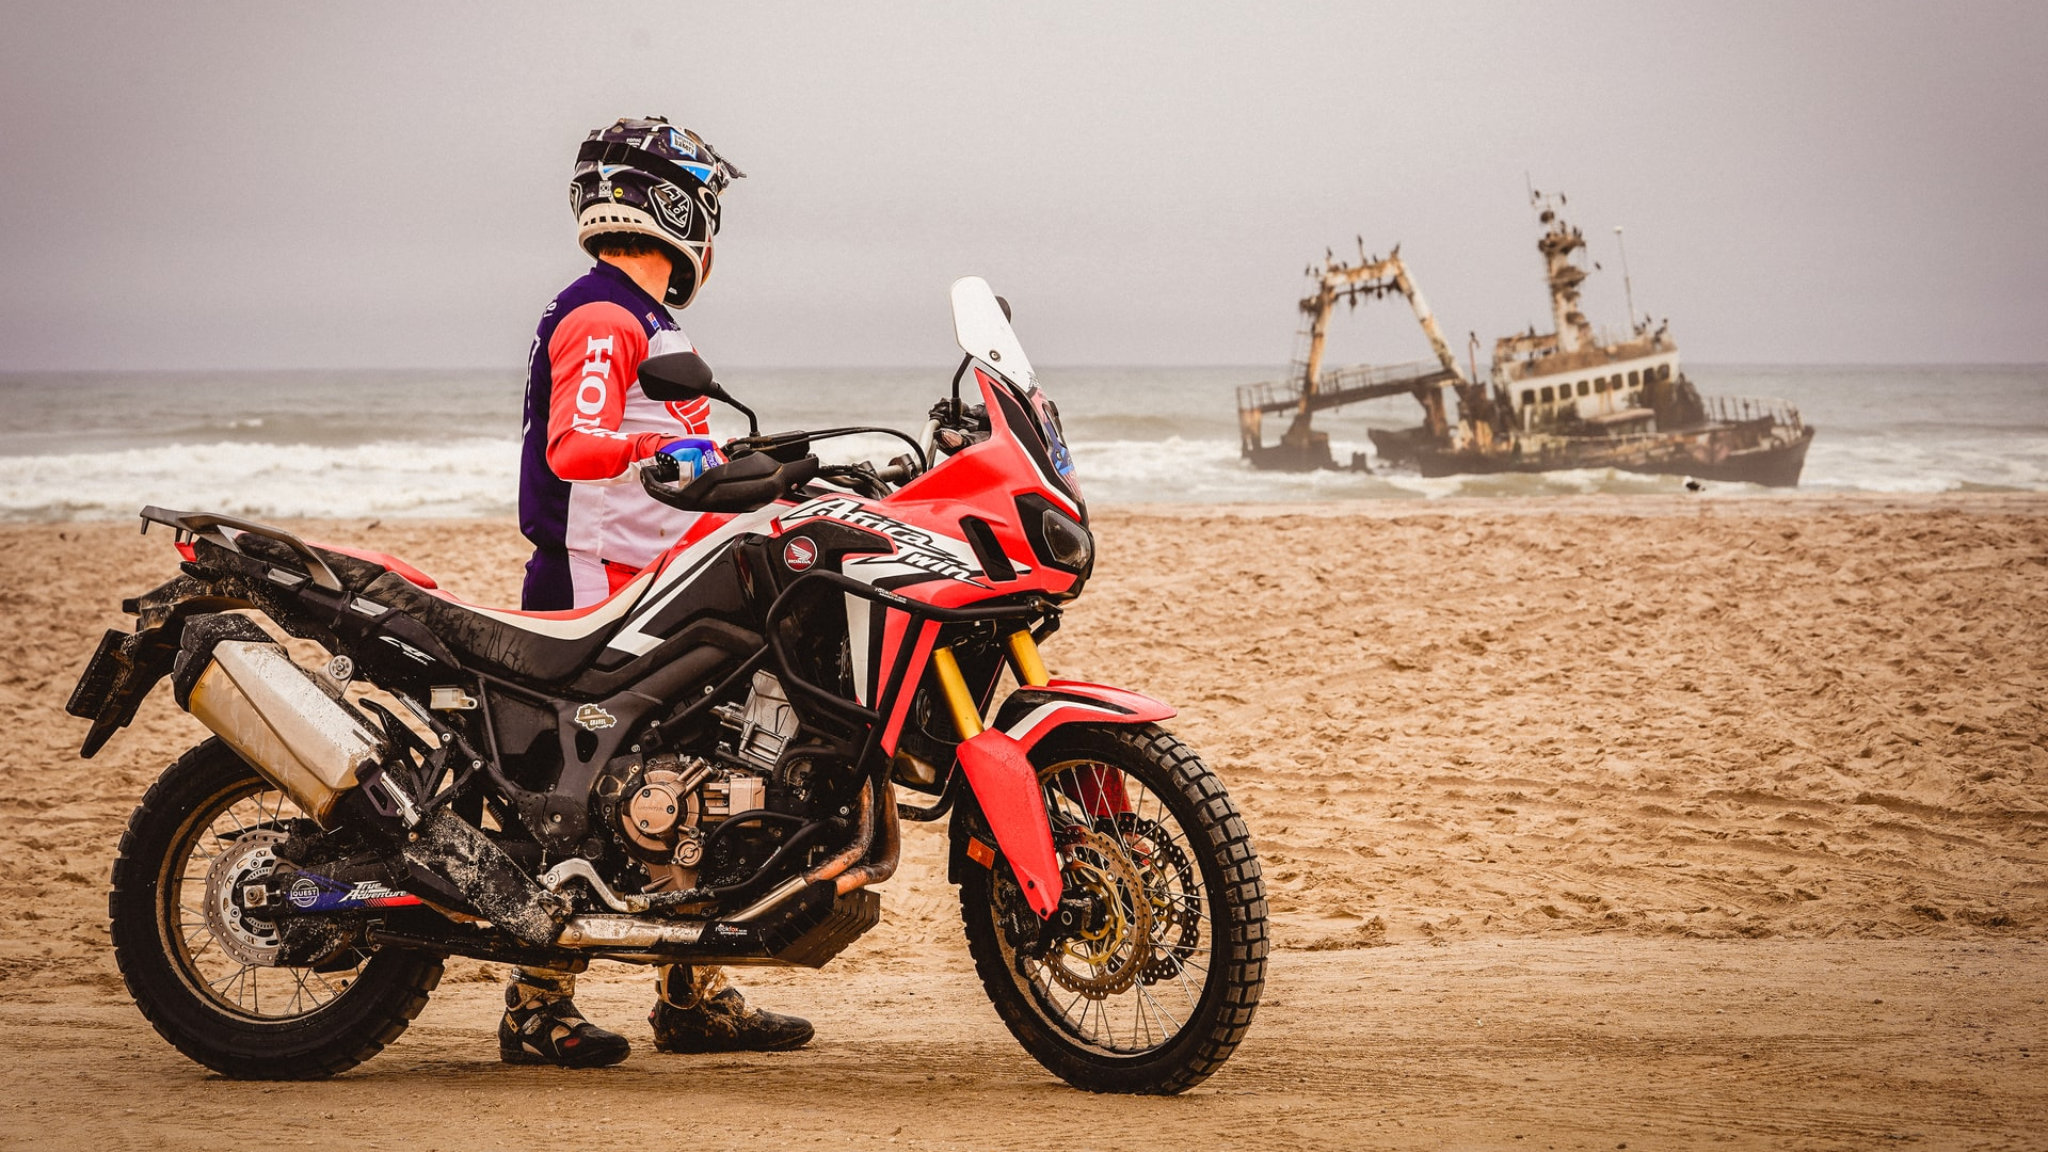 skeleton coast nave affondata motociclista featured